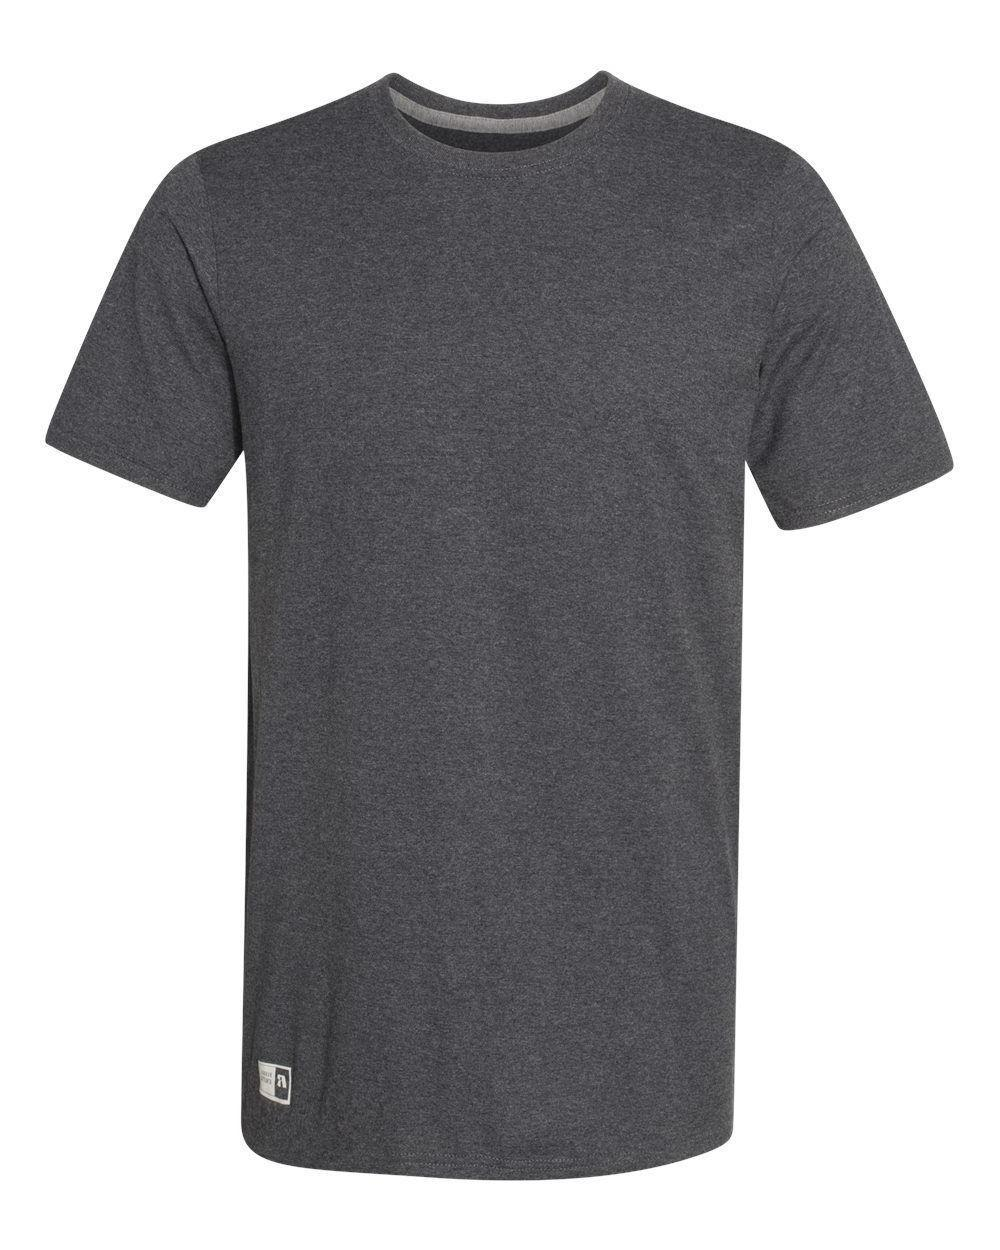 Russell - Essential Blend Performance Tee, Sports S-3XL